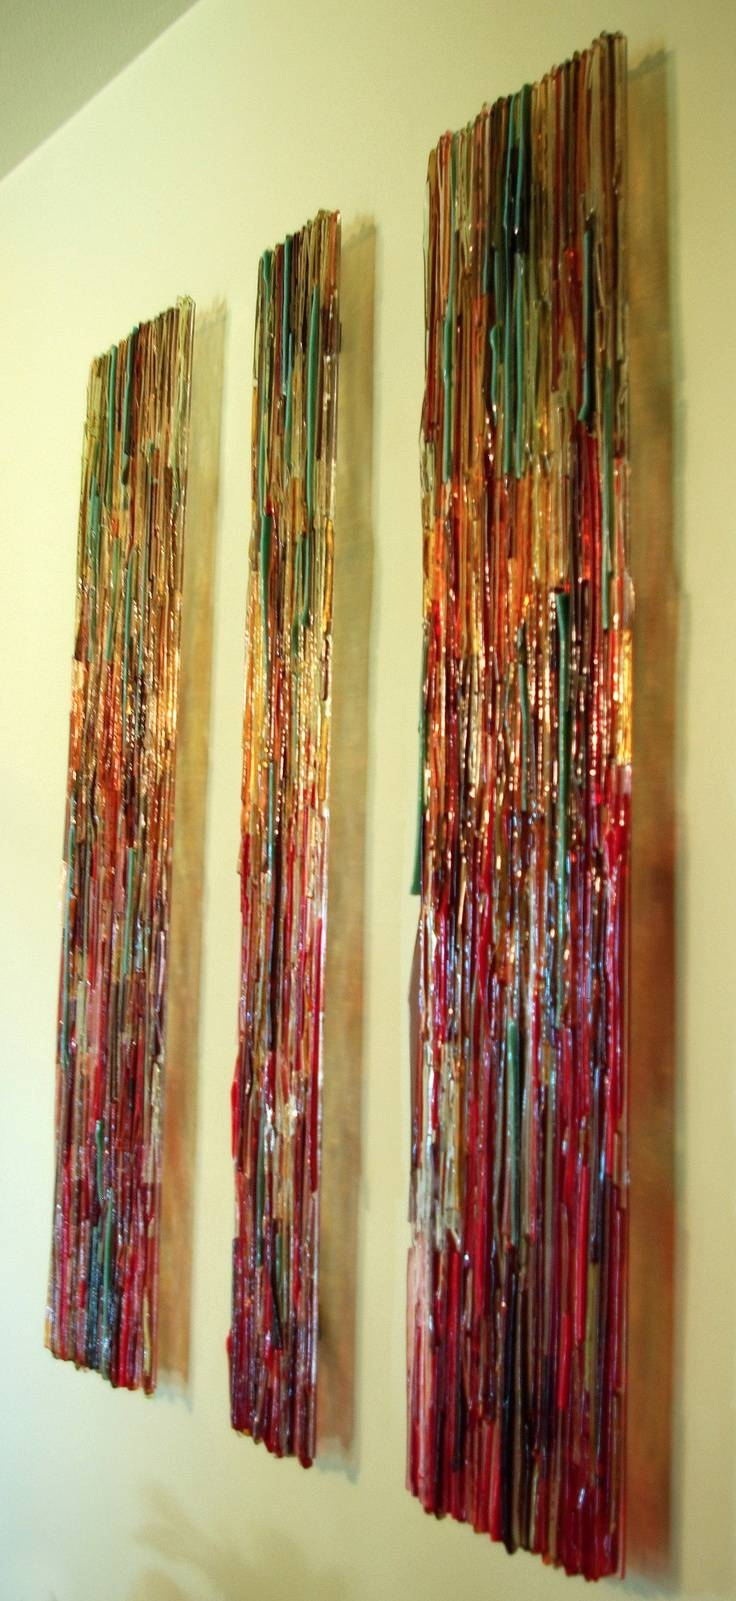 Glass Wall Art Design Inspiration Glass Wall Art – Home Decor Ideas For Current Fused Glass Wall Art (View 16 of 25)